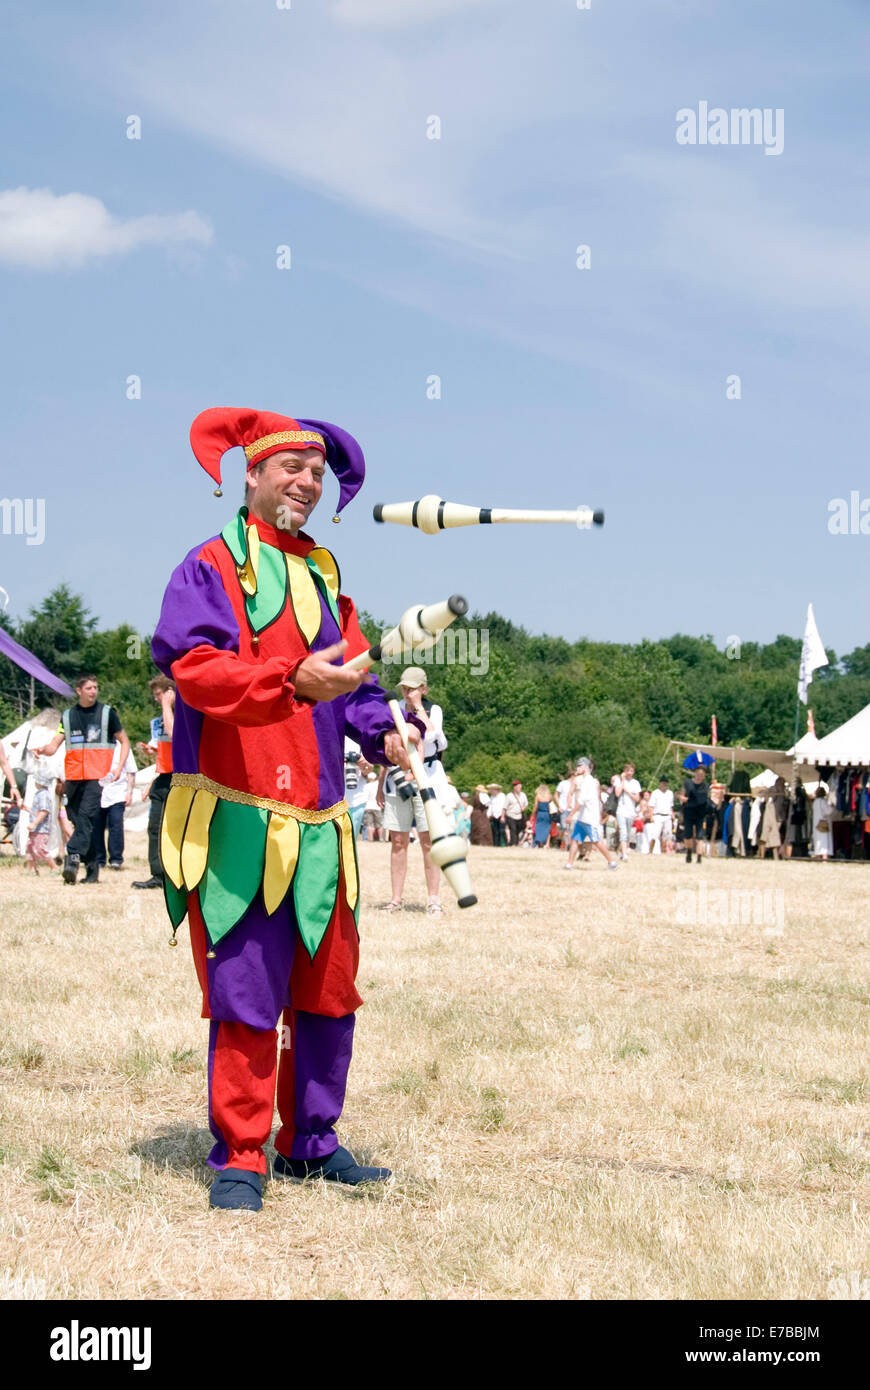 Tewkesbury, Gloucester UK July 201 : Jimmy Juggle the Jester performing at the Tewkesbury Medival Festival, an annual - Stock Image